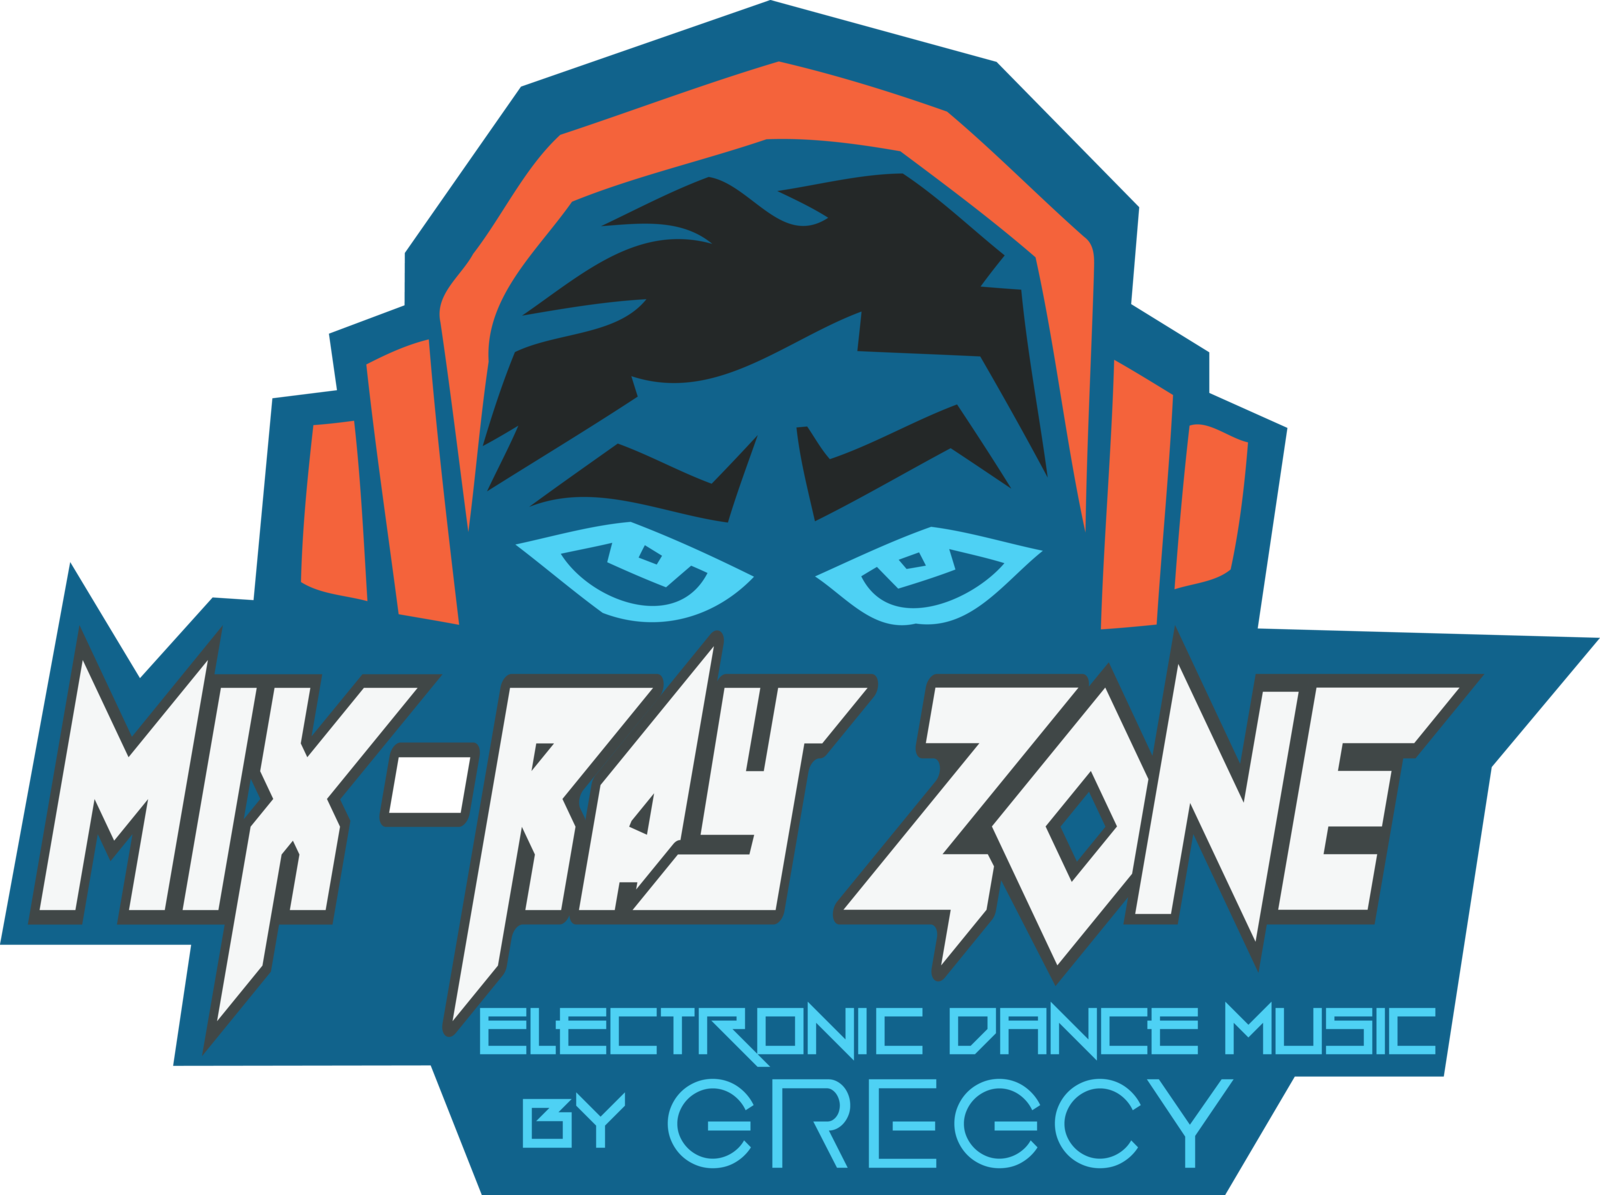 Le Mardi A 21H, Rendez-vous Mix-Ray Zone avec GREGCY